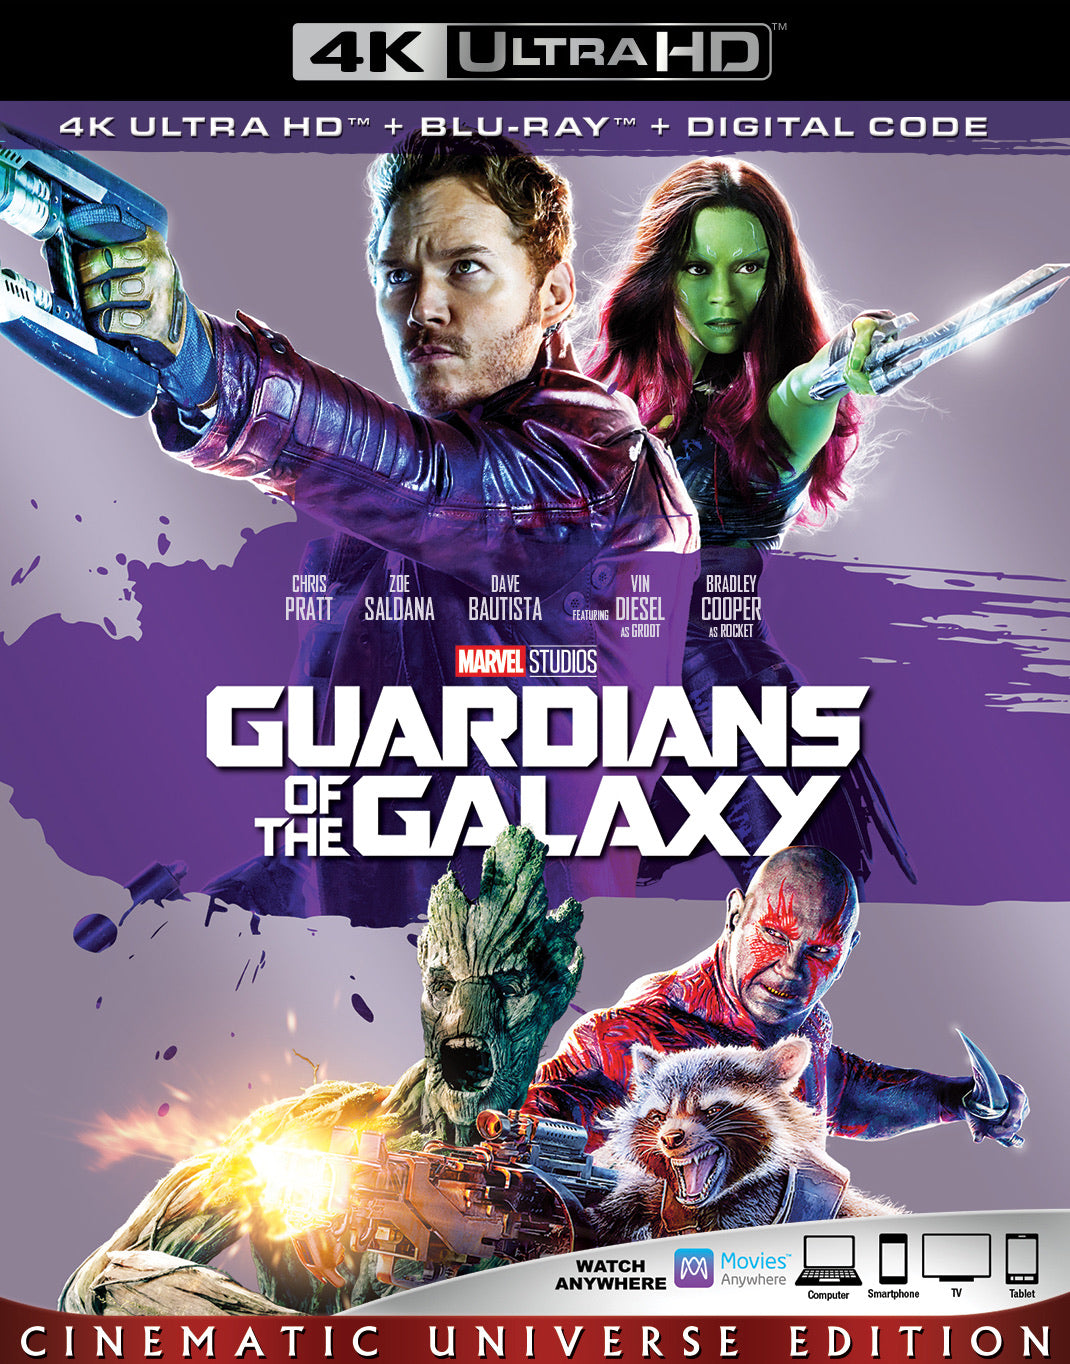 Guardians of the Galaxy Vol. 1 (2014) Vudu or Movies Anywhere 4K redemption only